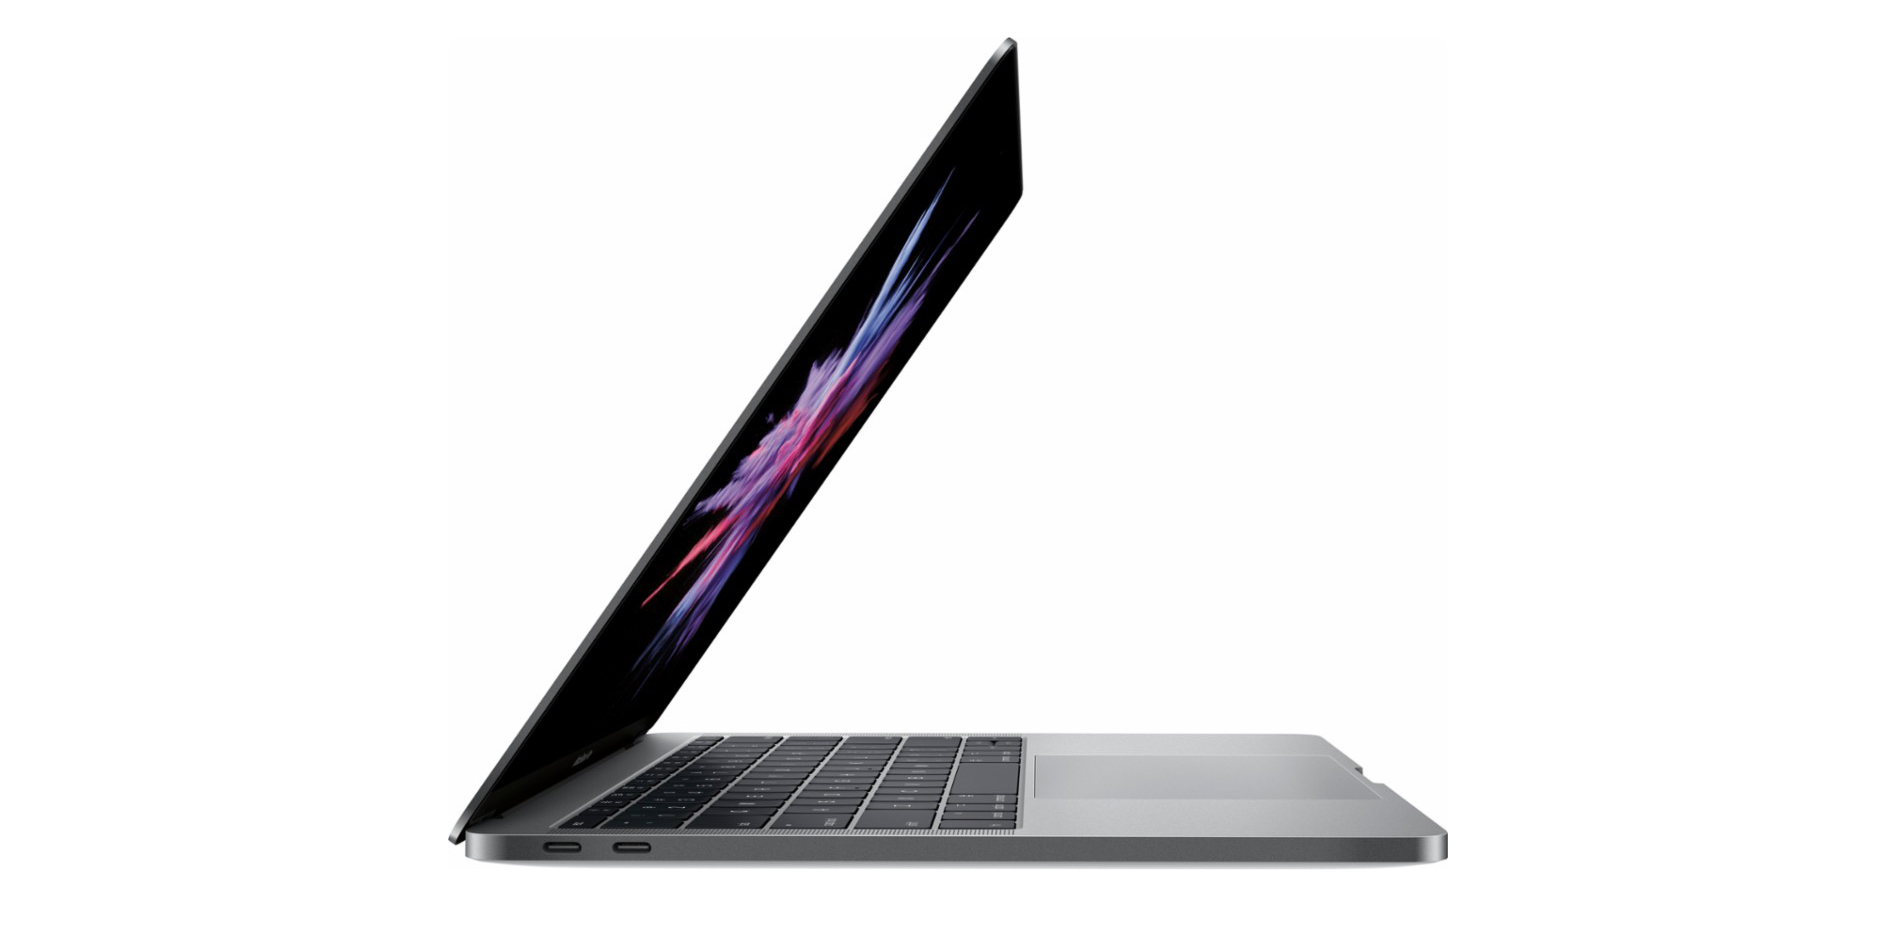 Remove the Touch Bar and get a 13-inch MacBook Pro from $680 (Cert. Refurb) - 9to5Toys